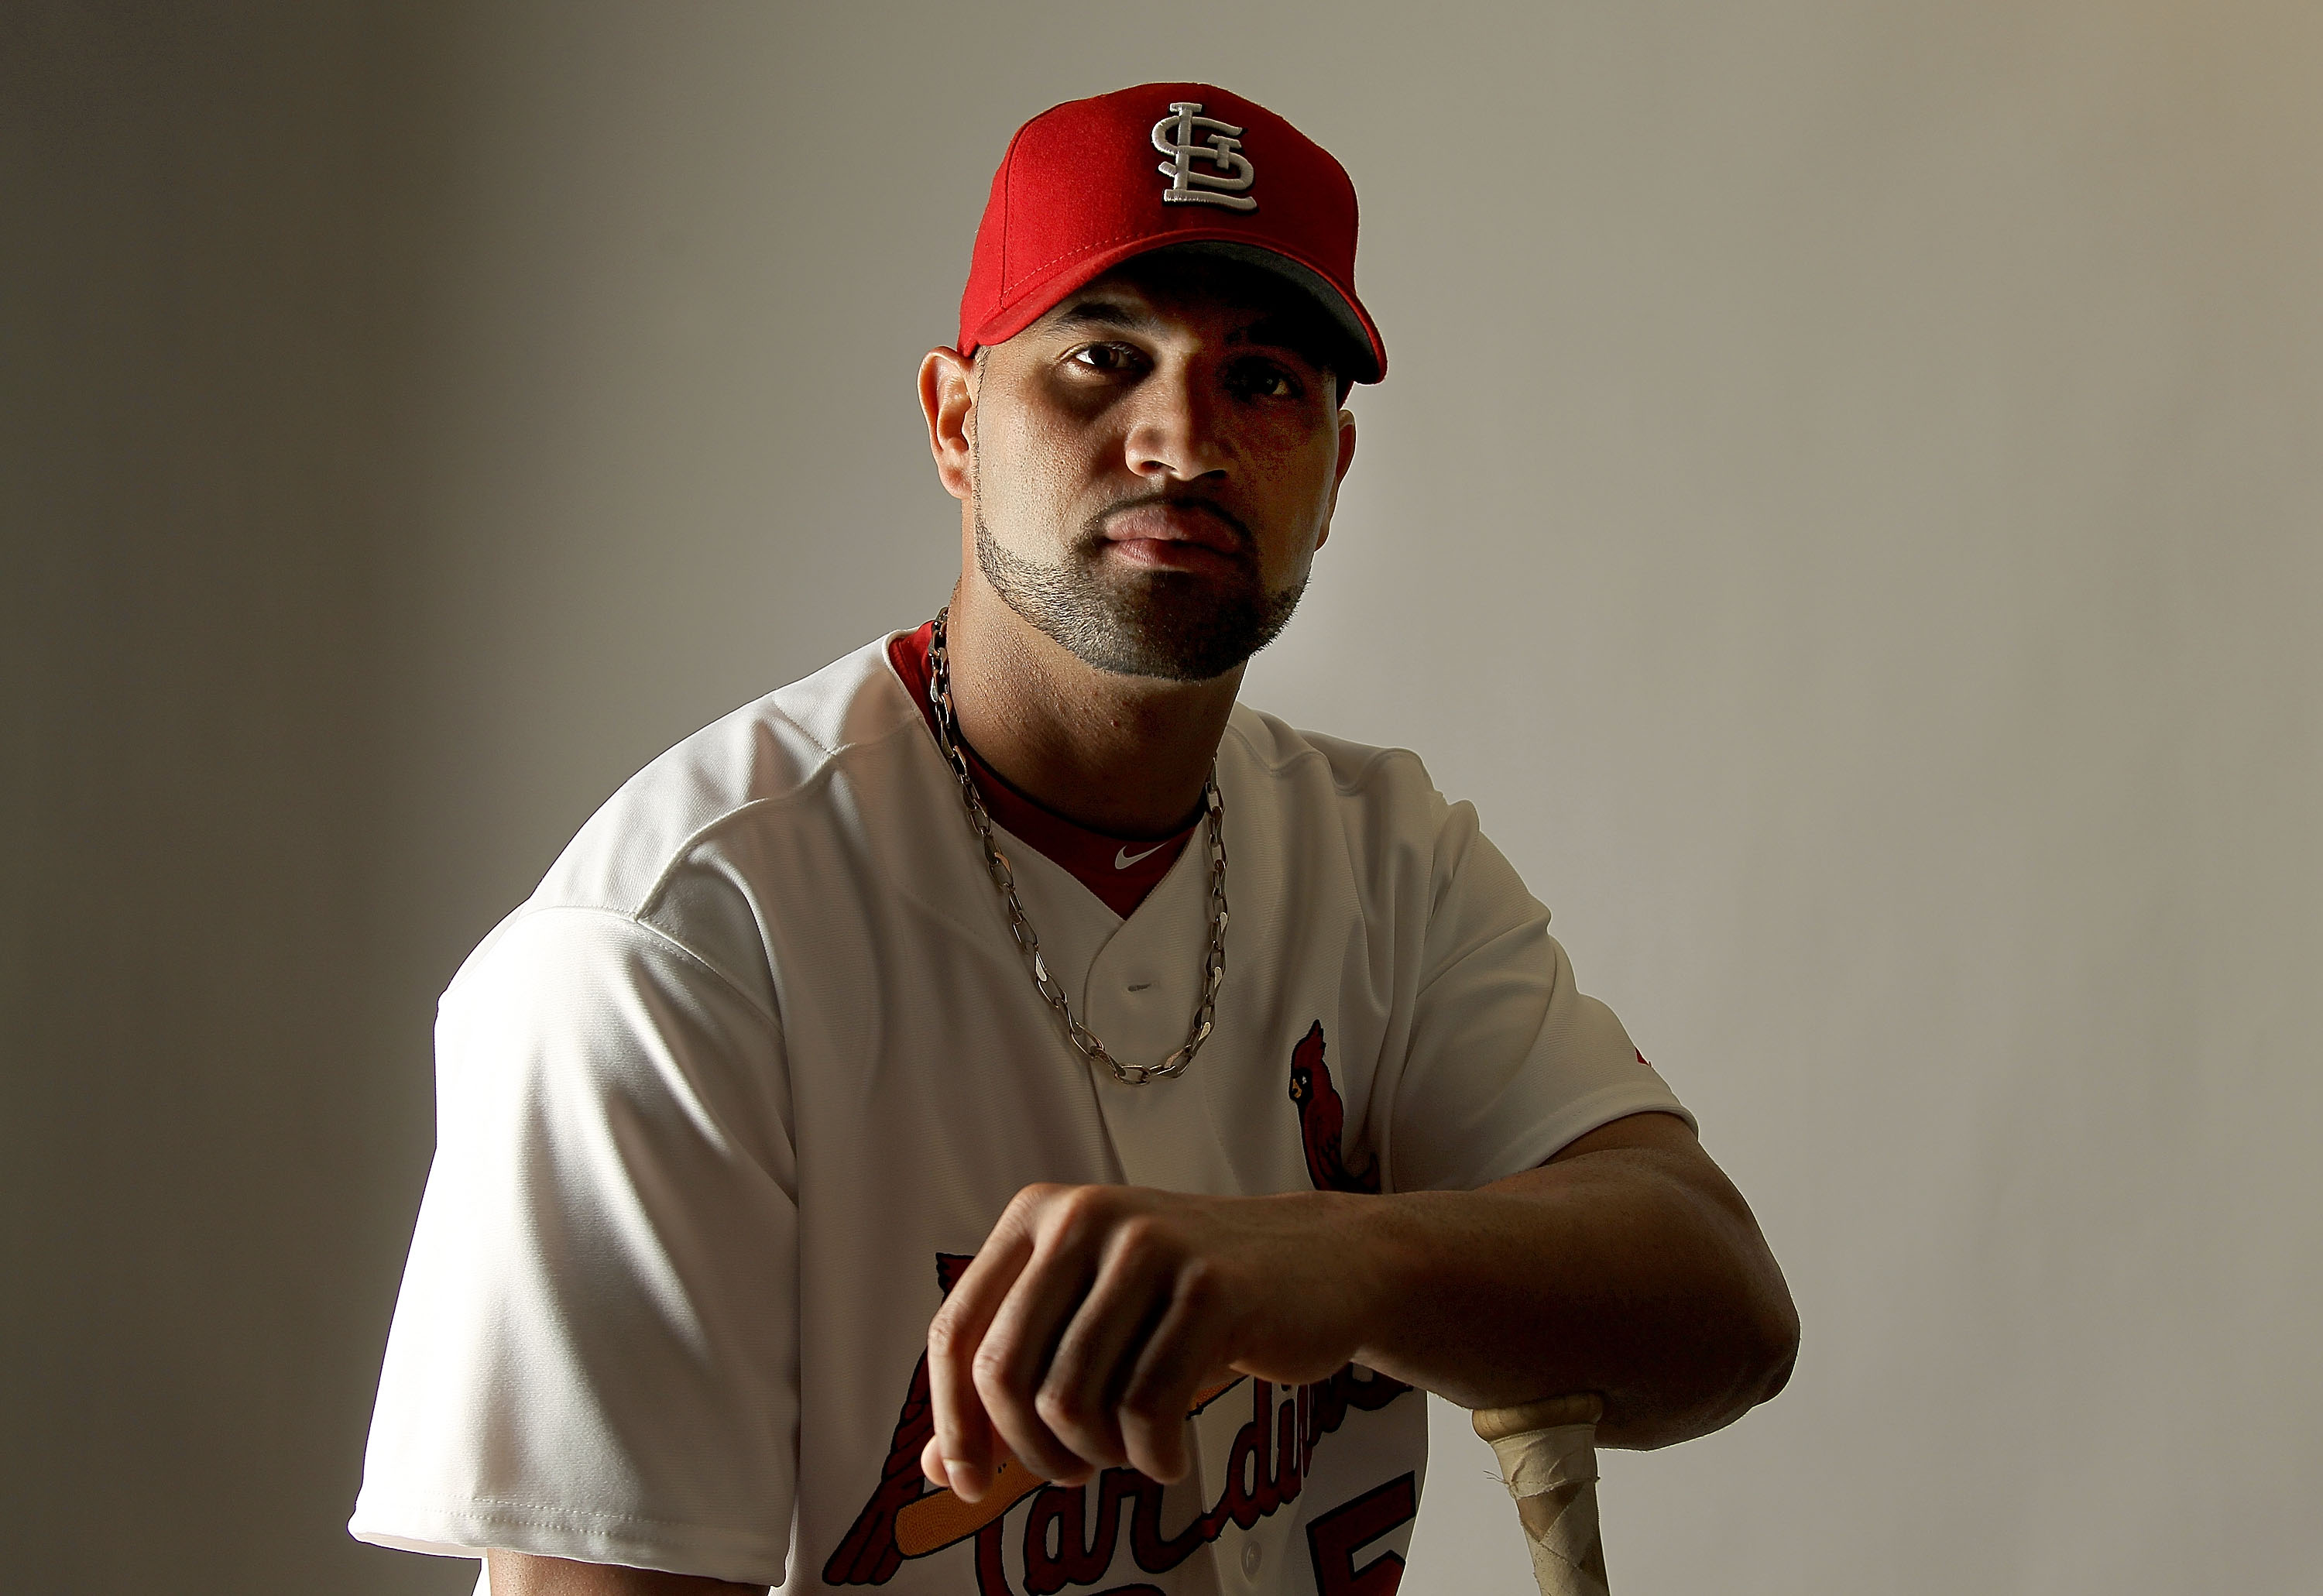 JUPITER, FL - FEBRUARY 24: Albert Pujols #5 of the St. Louis Cardinals poses for a portrait during Photo Day at Roger Dean Stadium on February 24, 2011 in Jupiter, Florida.  (Photo by Mike Ehrmann/Getty Images)